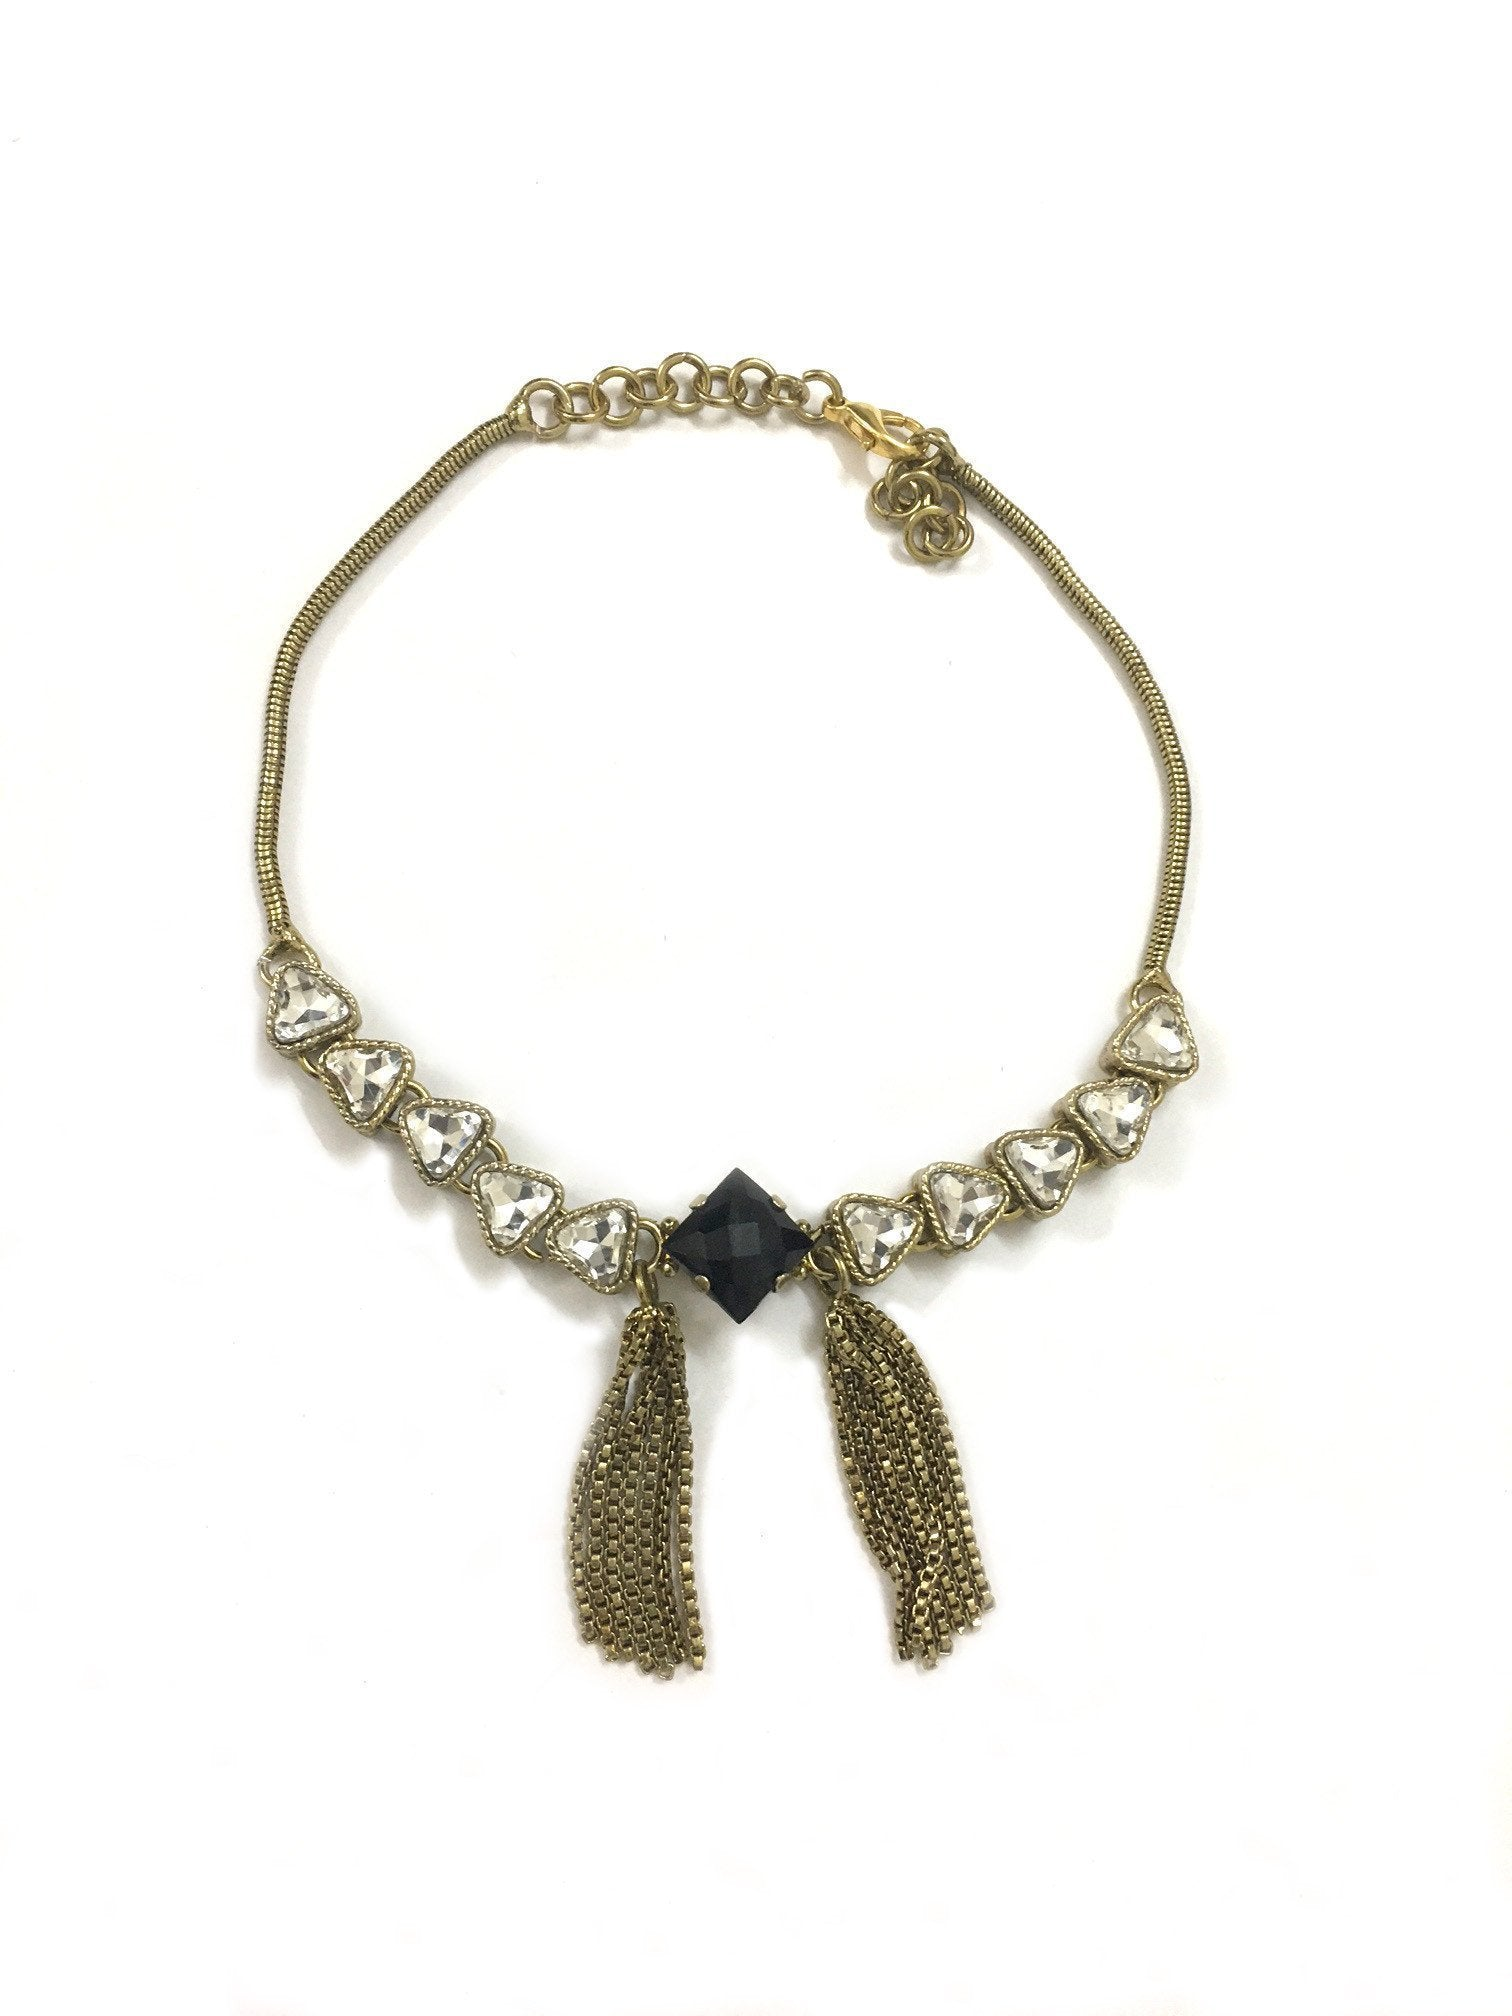 Hertha Ii Necklace